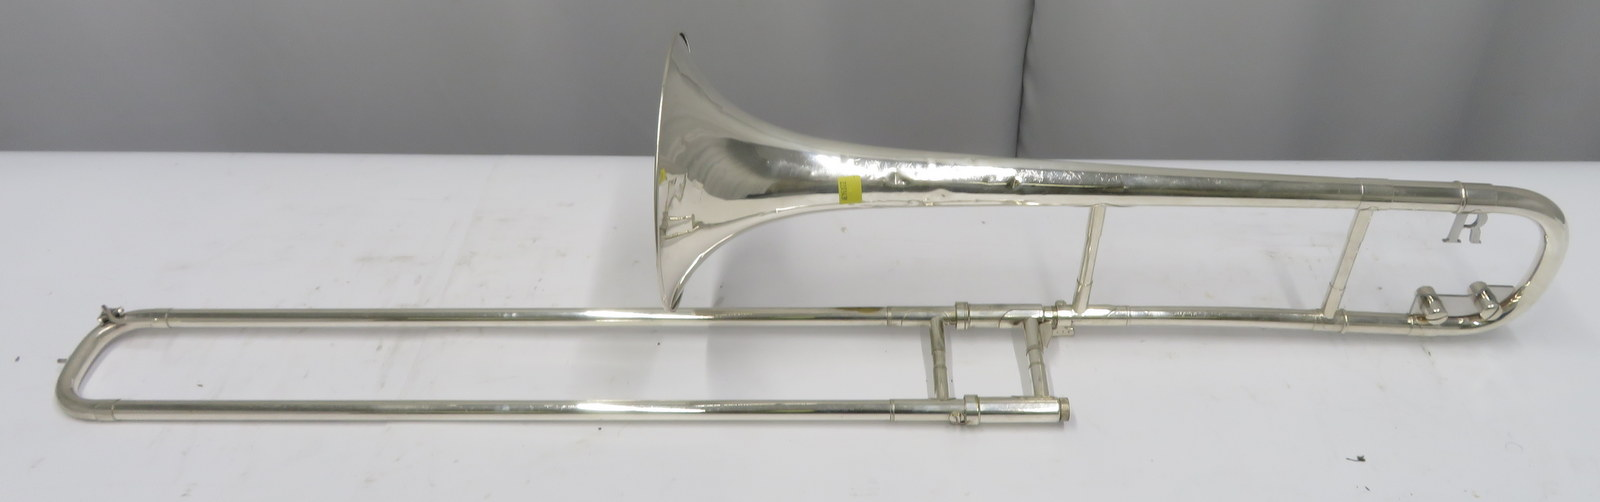 Rath R3 trombone with case. Serial number: R3043. - Image 3 of 14